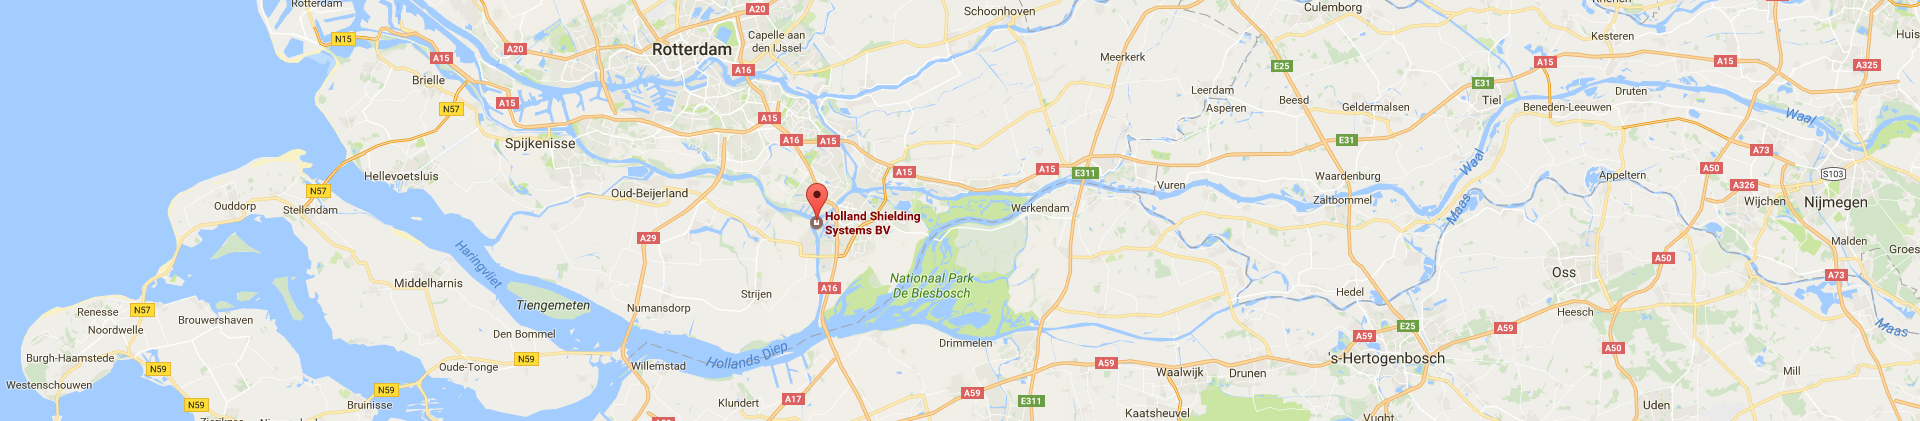 Location of Holland Shielding Systems B.V. on map